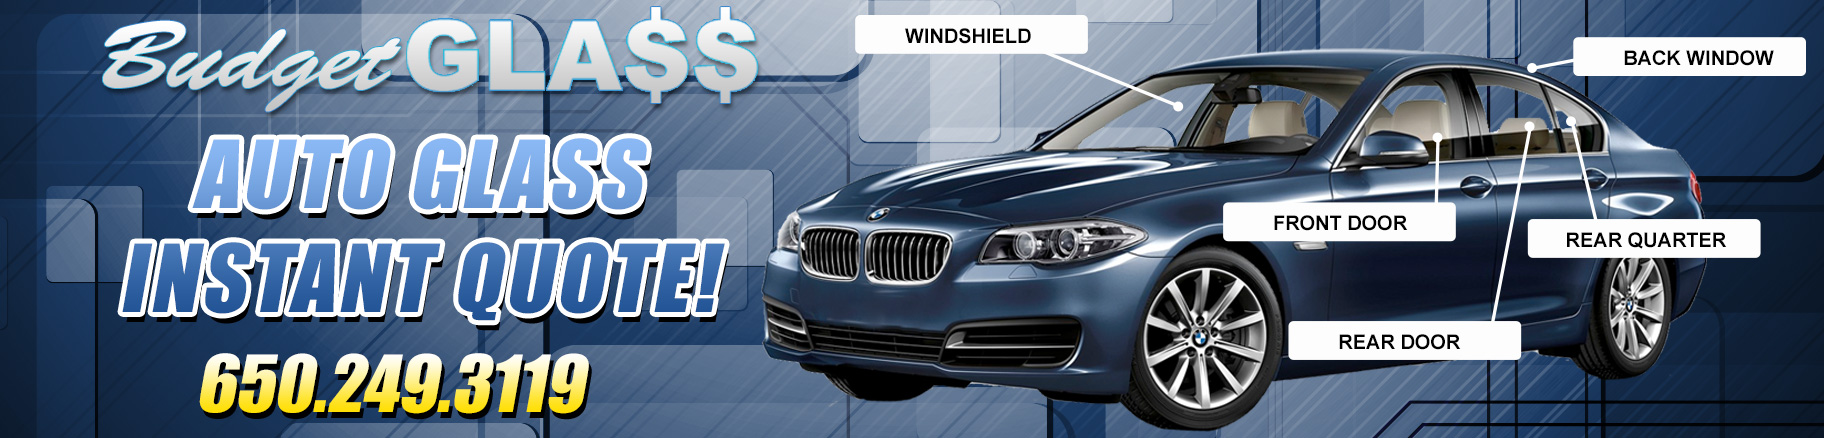 Auto Glass Quote Fair Auto Glass Repair San Carlos  California Windshield Replacement